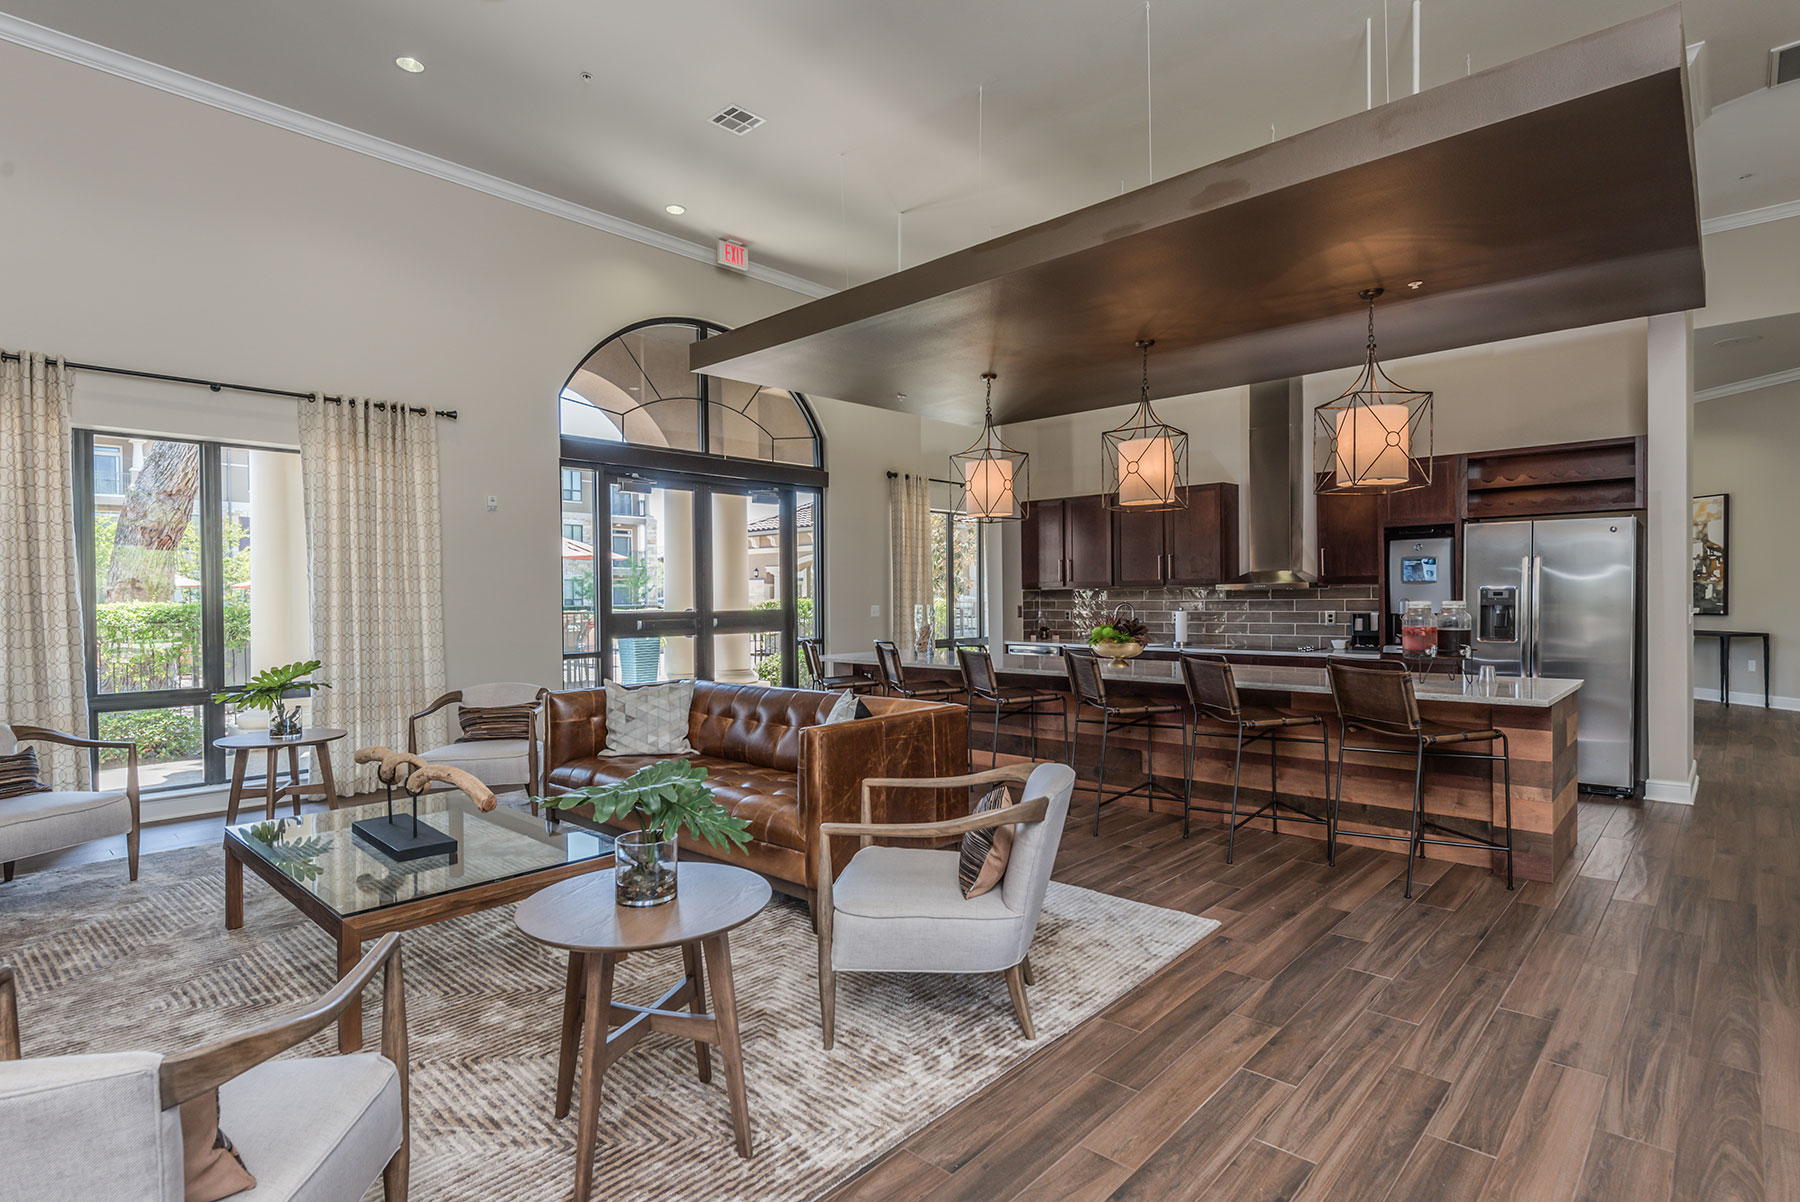 expansive clubhouse kitchen with bar top seating, large windows and comfortable seating for socializing